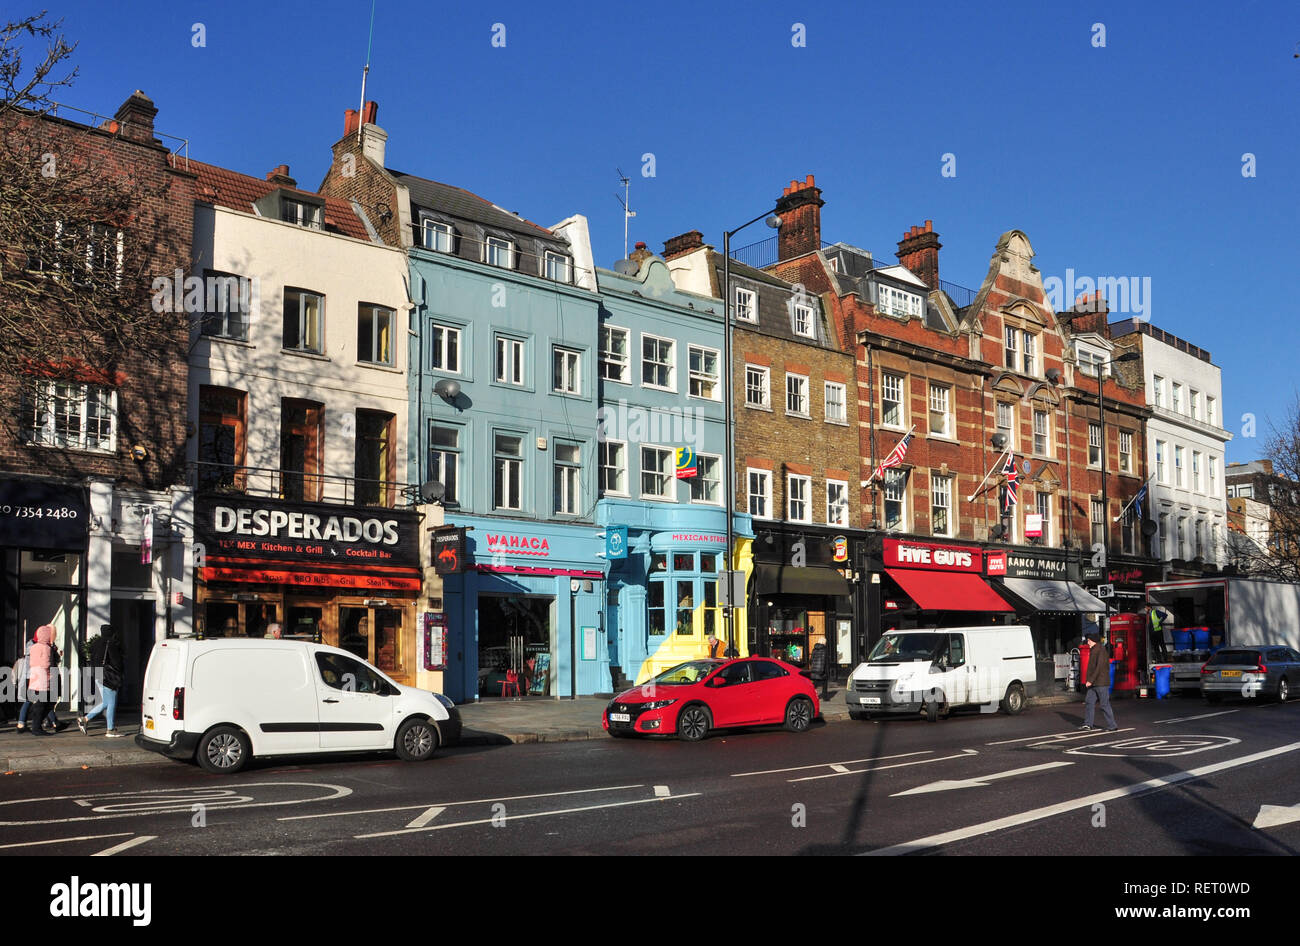 Shops and Cafes, Upper Street, Islington, London, England, UK - Stock Image